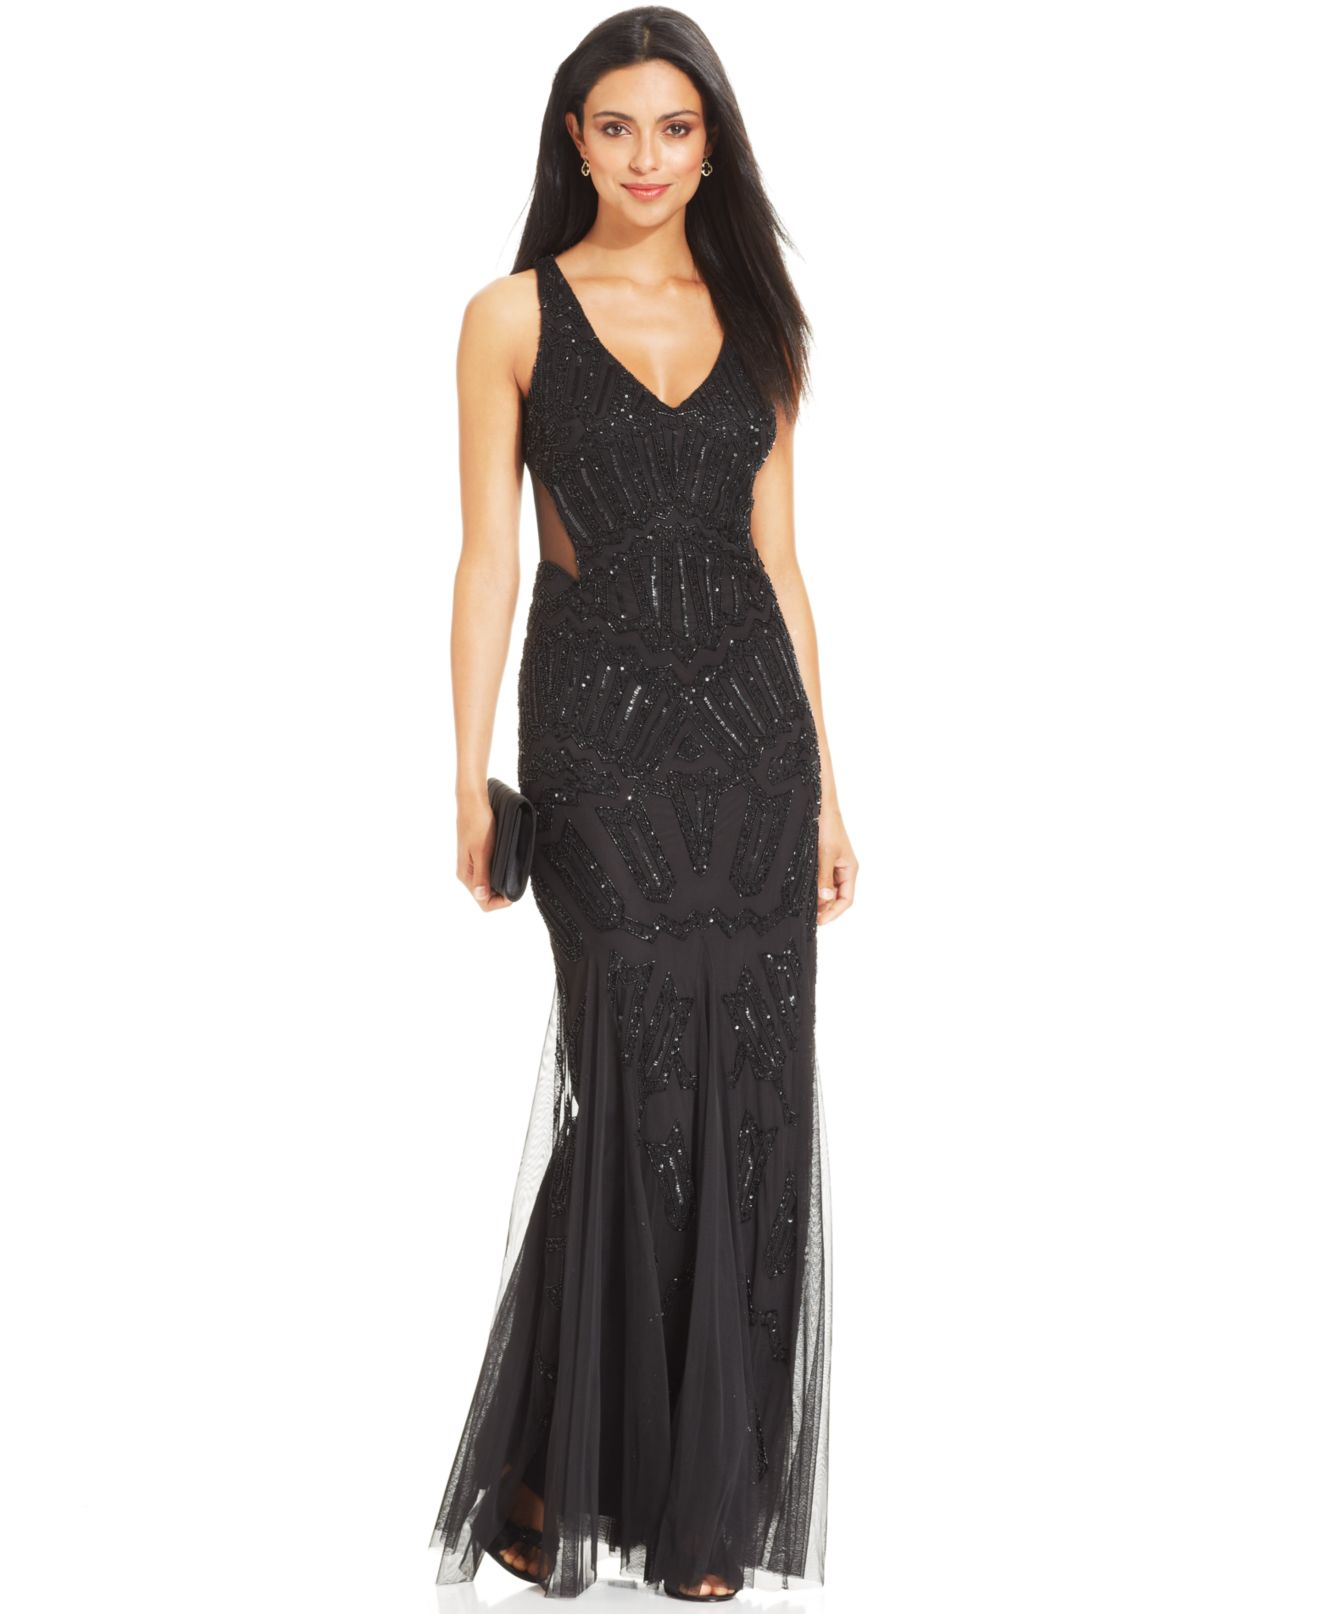 Lyst - Adrianna Papell Sleeveless Beaded Mermaid Gown in Black